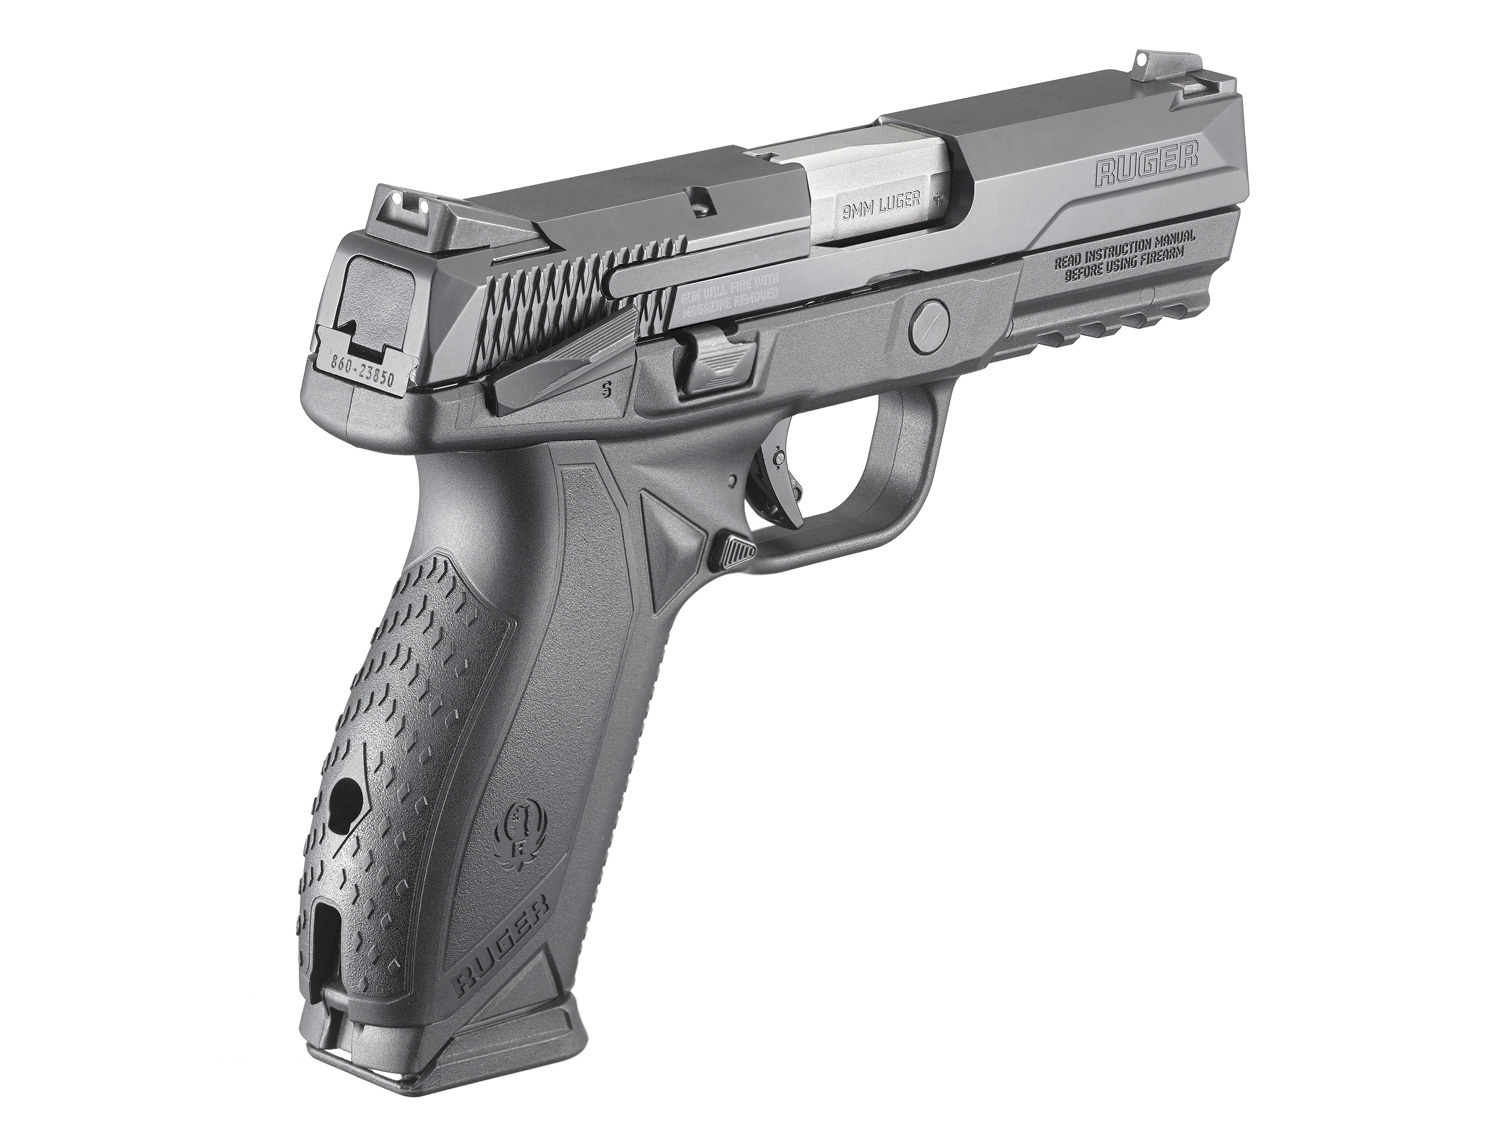 Ruger SALE - Ruger American Pistol® 9mm, 3 dot sight